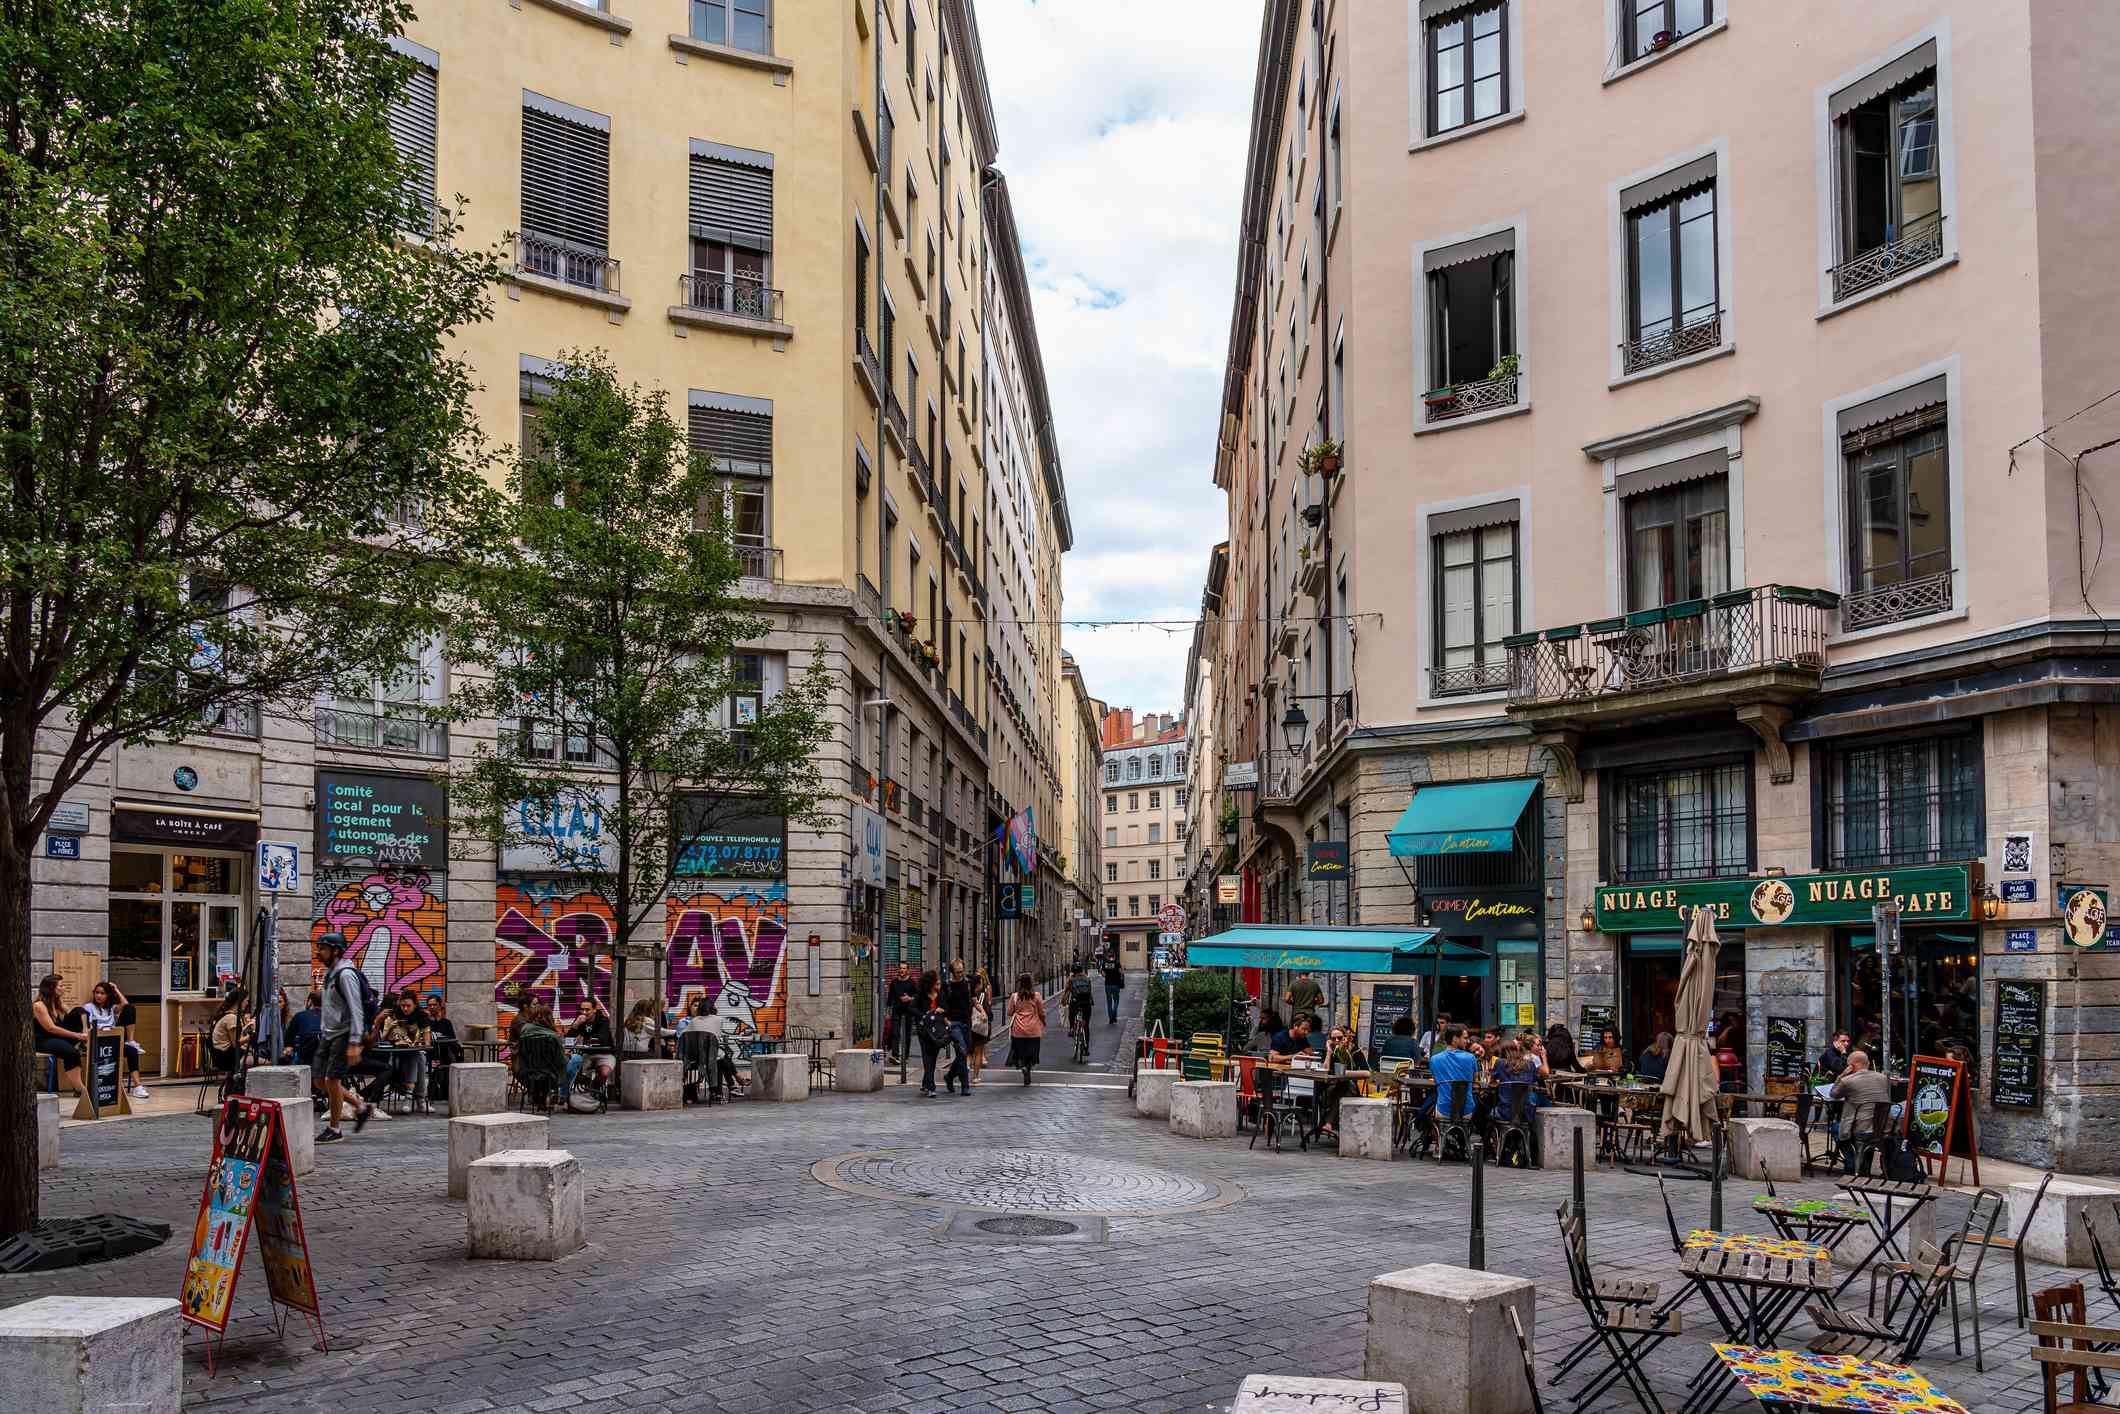 A square in the Croix-Rousse district, Lyon